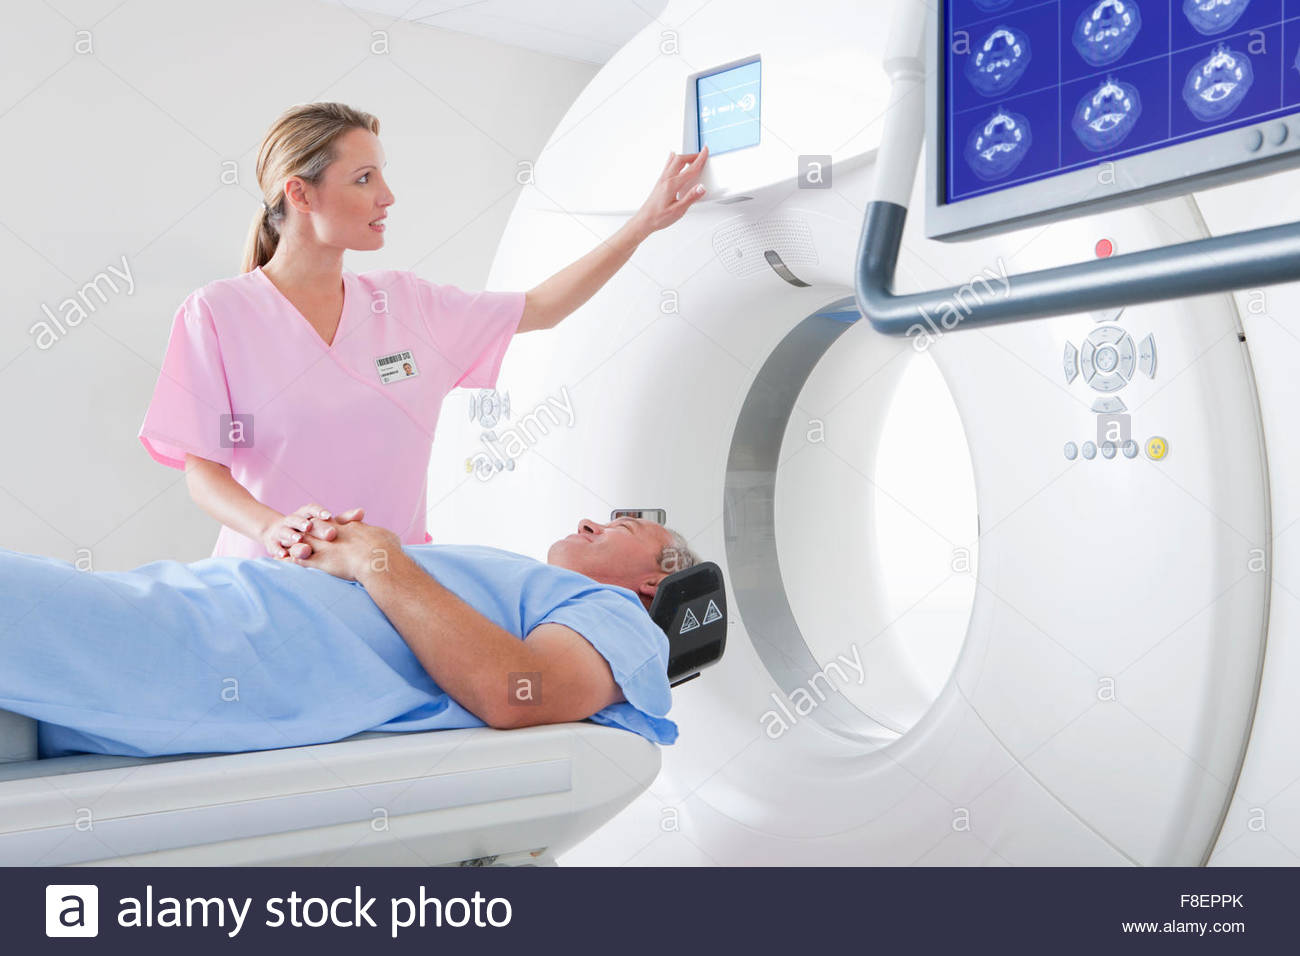 Technician Nurse Comforting Patient At Ct Scanner In Hospital ...